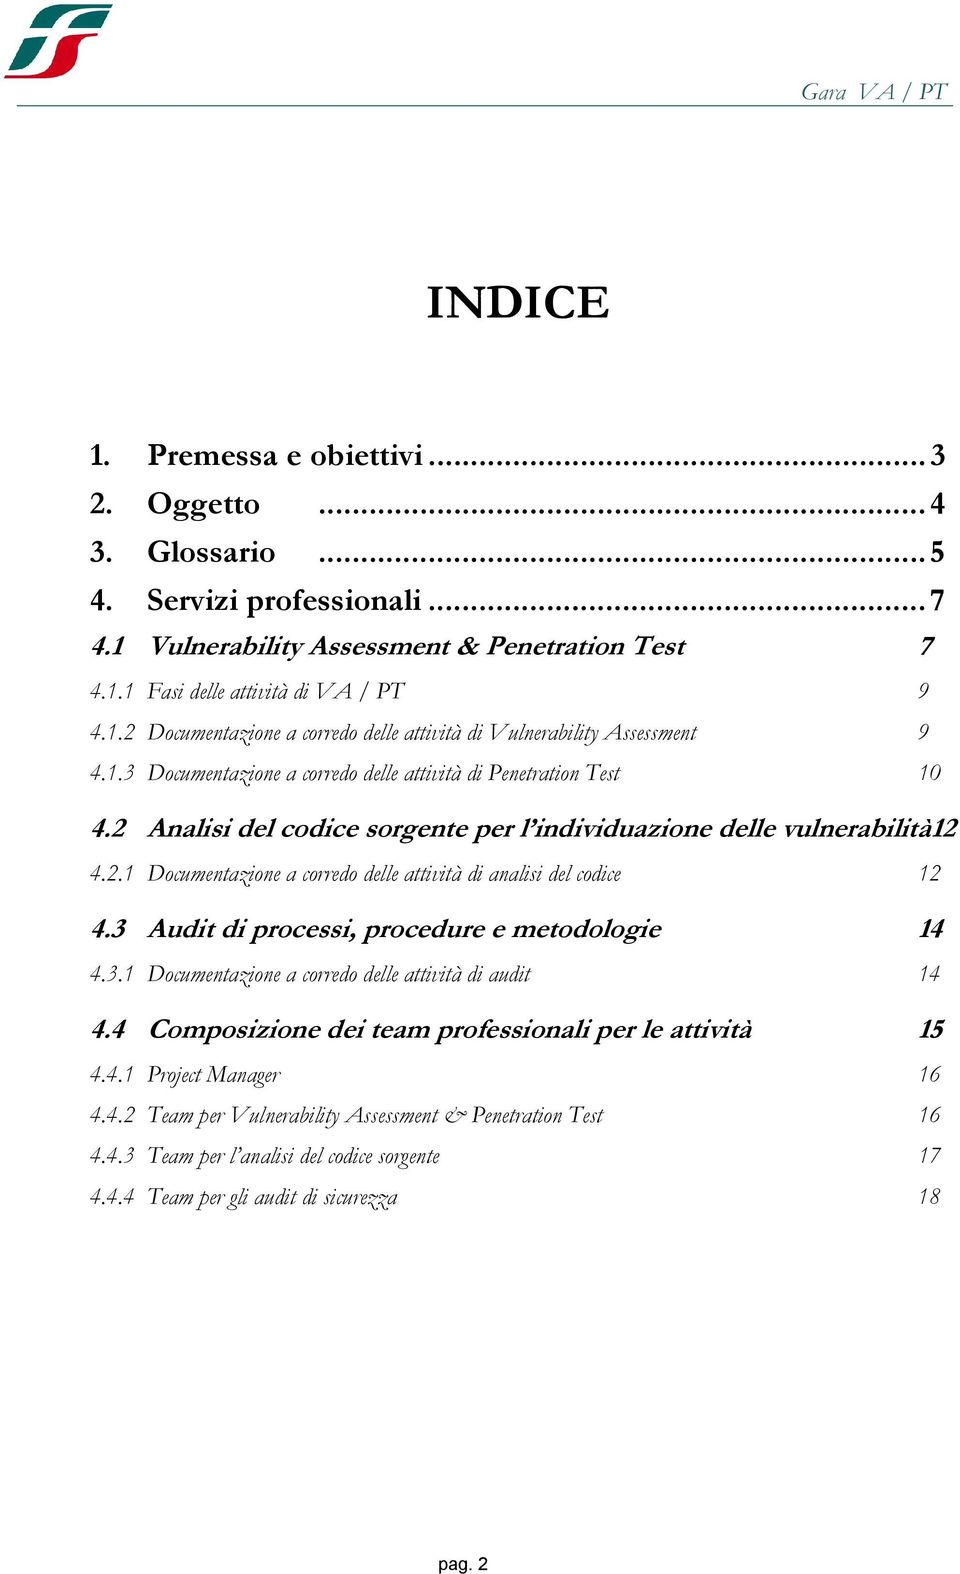 3 Audit di prcessi, prcedure e metdlgie 14 4.3.1 Dcumentazine a crred delle attività di audit 14 4.4 Cmpsizine dei team prfessinali per le attività 15 4.4.1 Prject Manager 16 4.4.2 Team per Vulnerability Assessment & Penetratin Test 16 4.